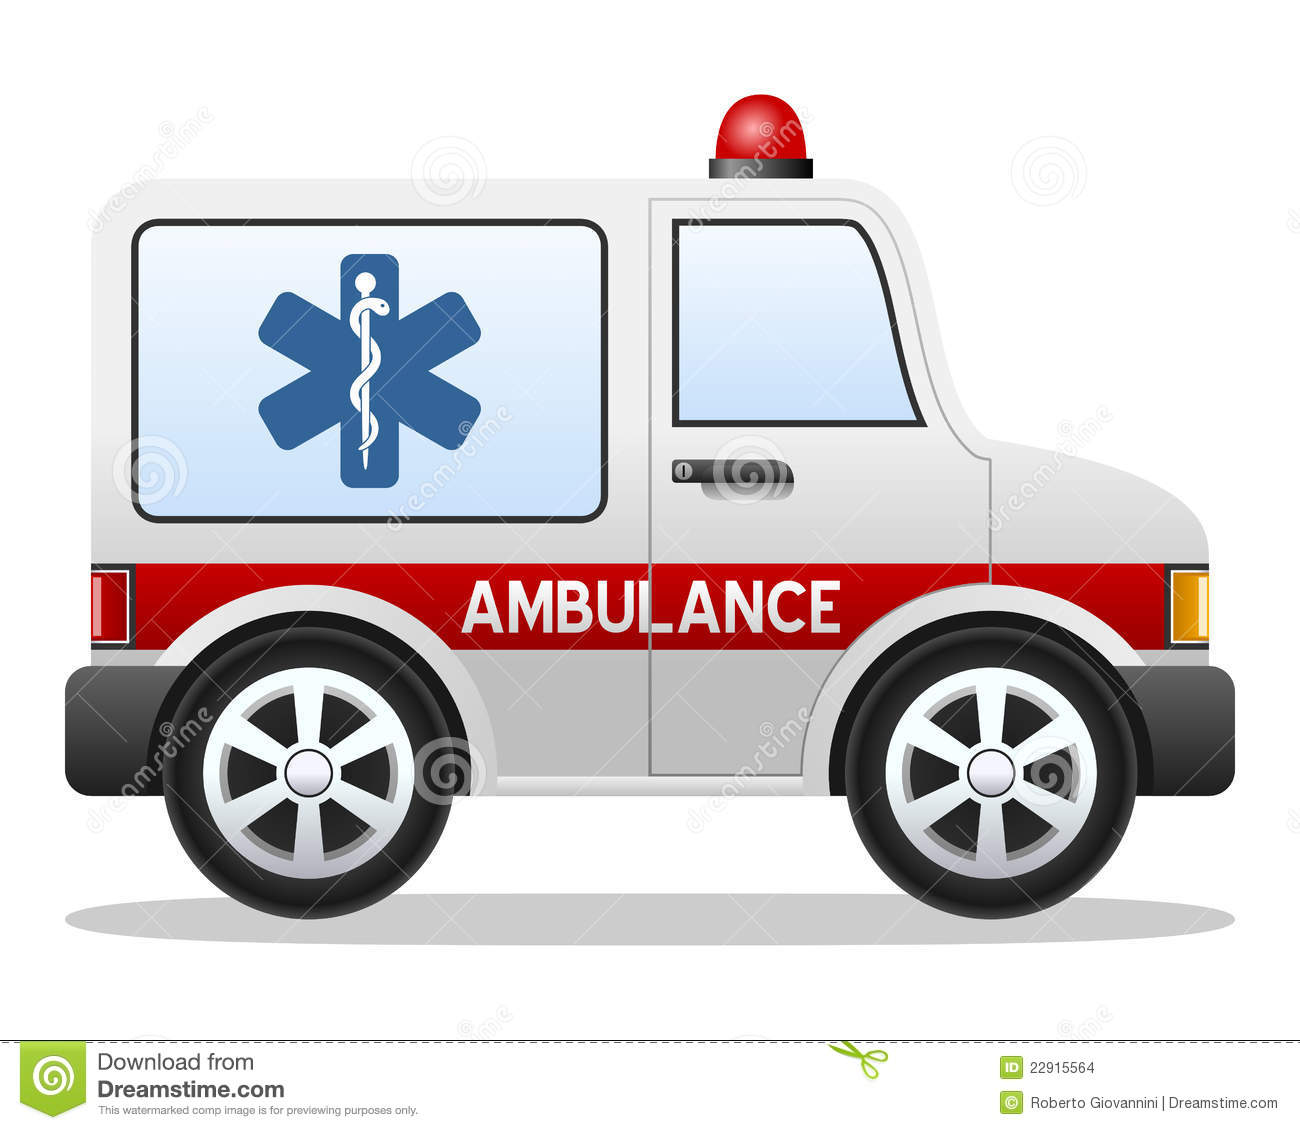 V hicule d 39 ambulance de dessin anim illustration de vecteur illustration du m dical v hicule - Dessin ambulance ...